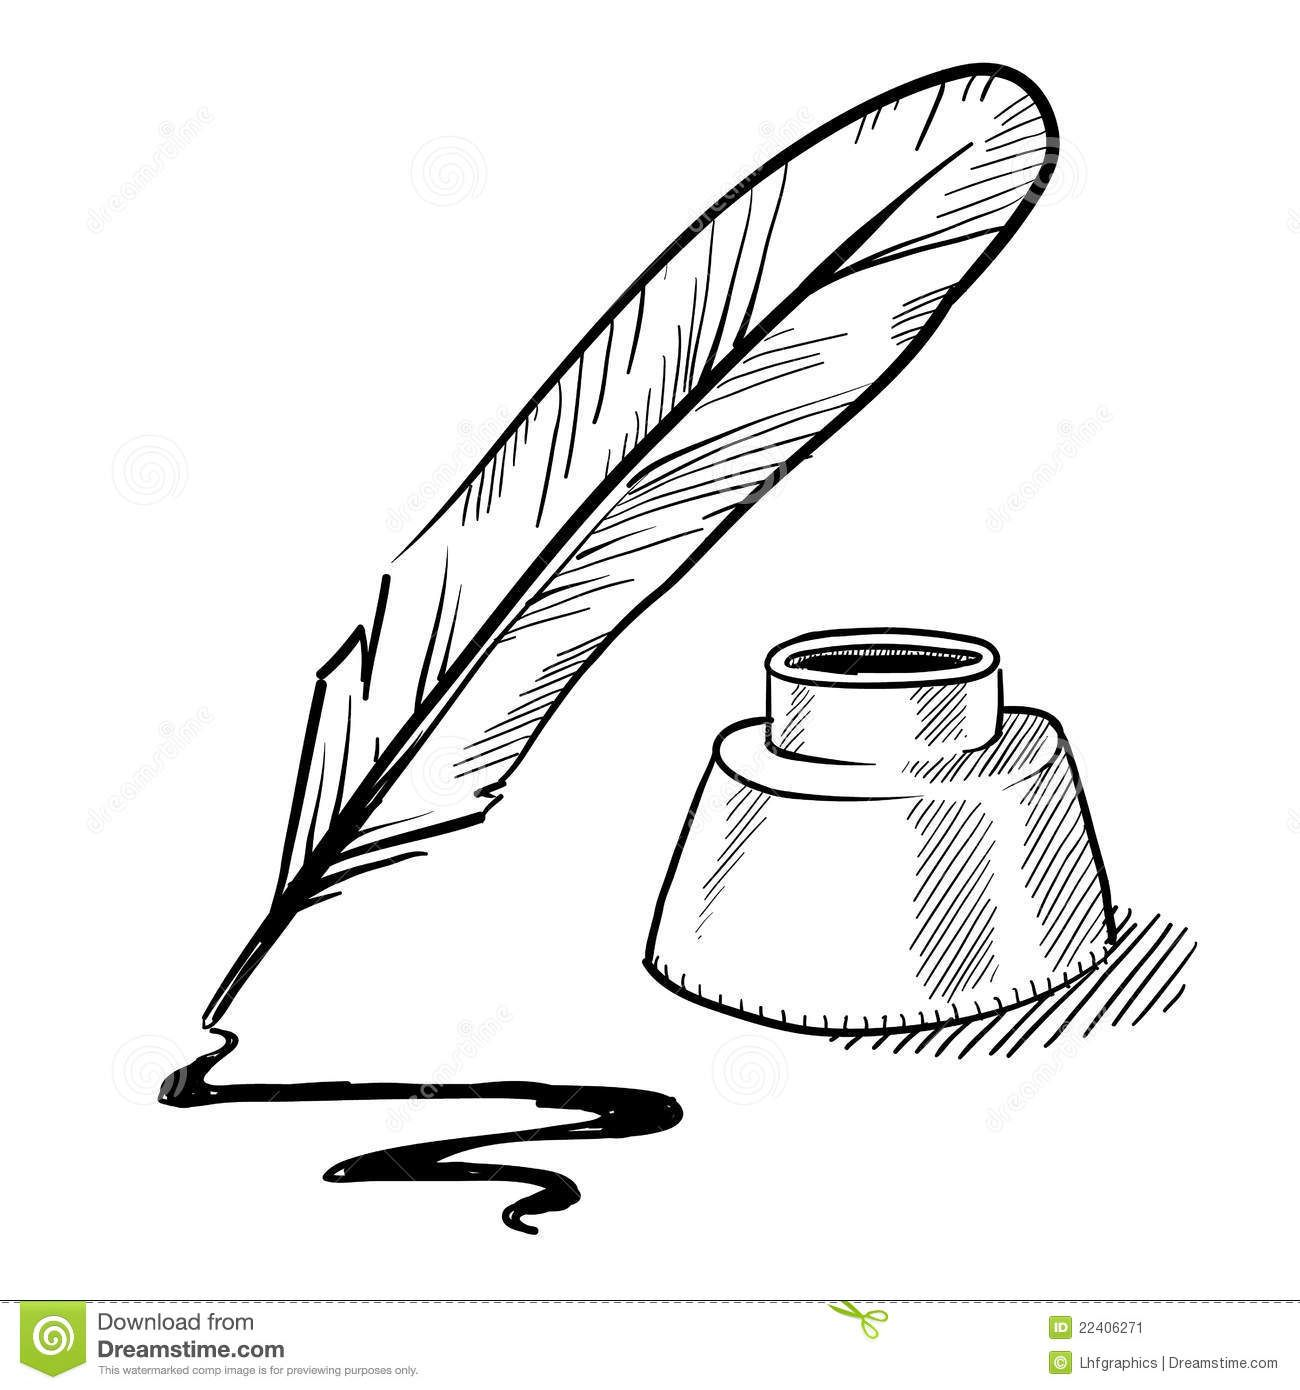 Images For Gt Feather Pen And Scroll Clip Art